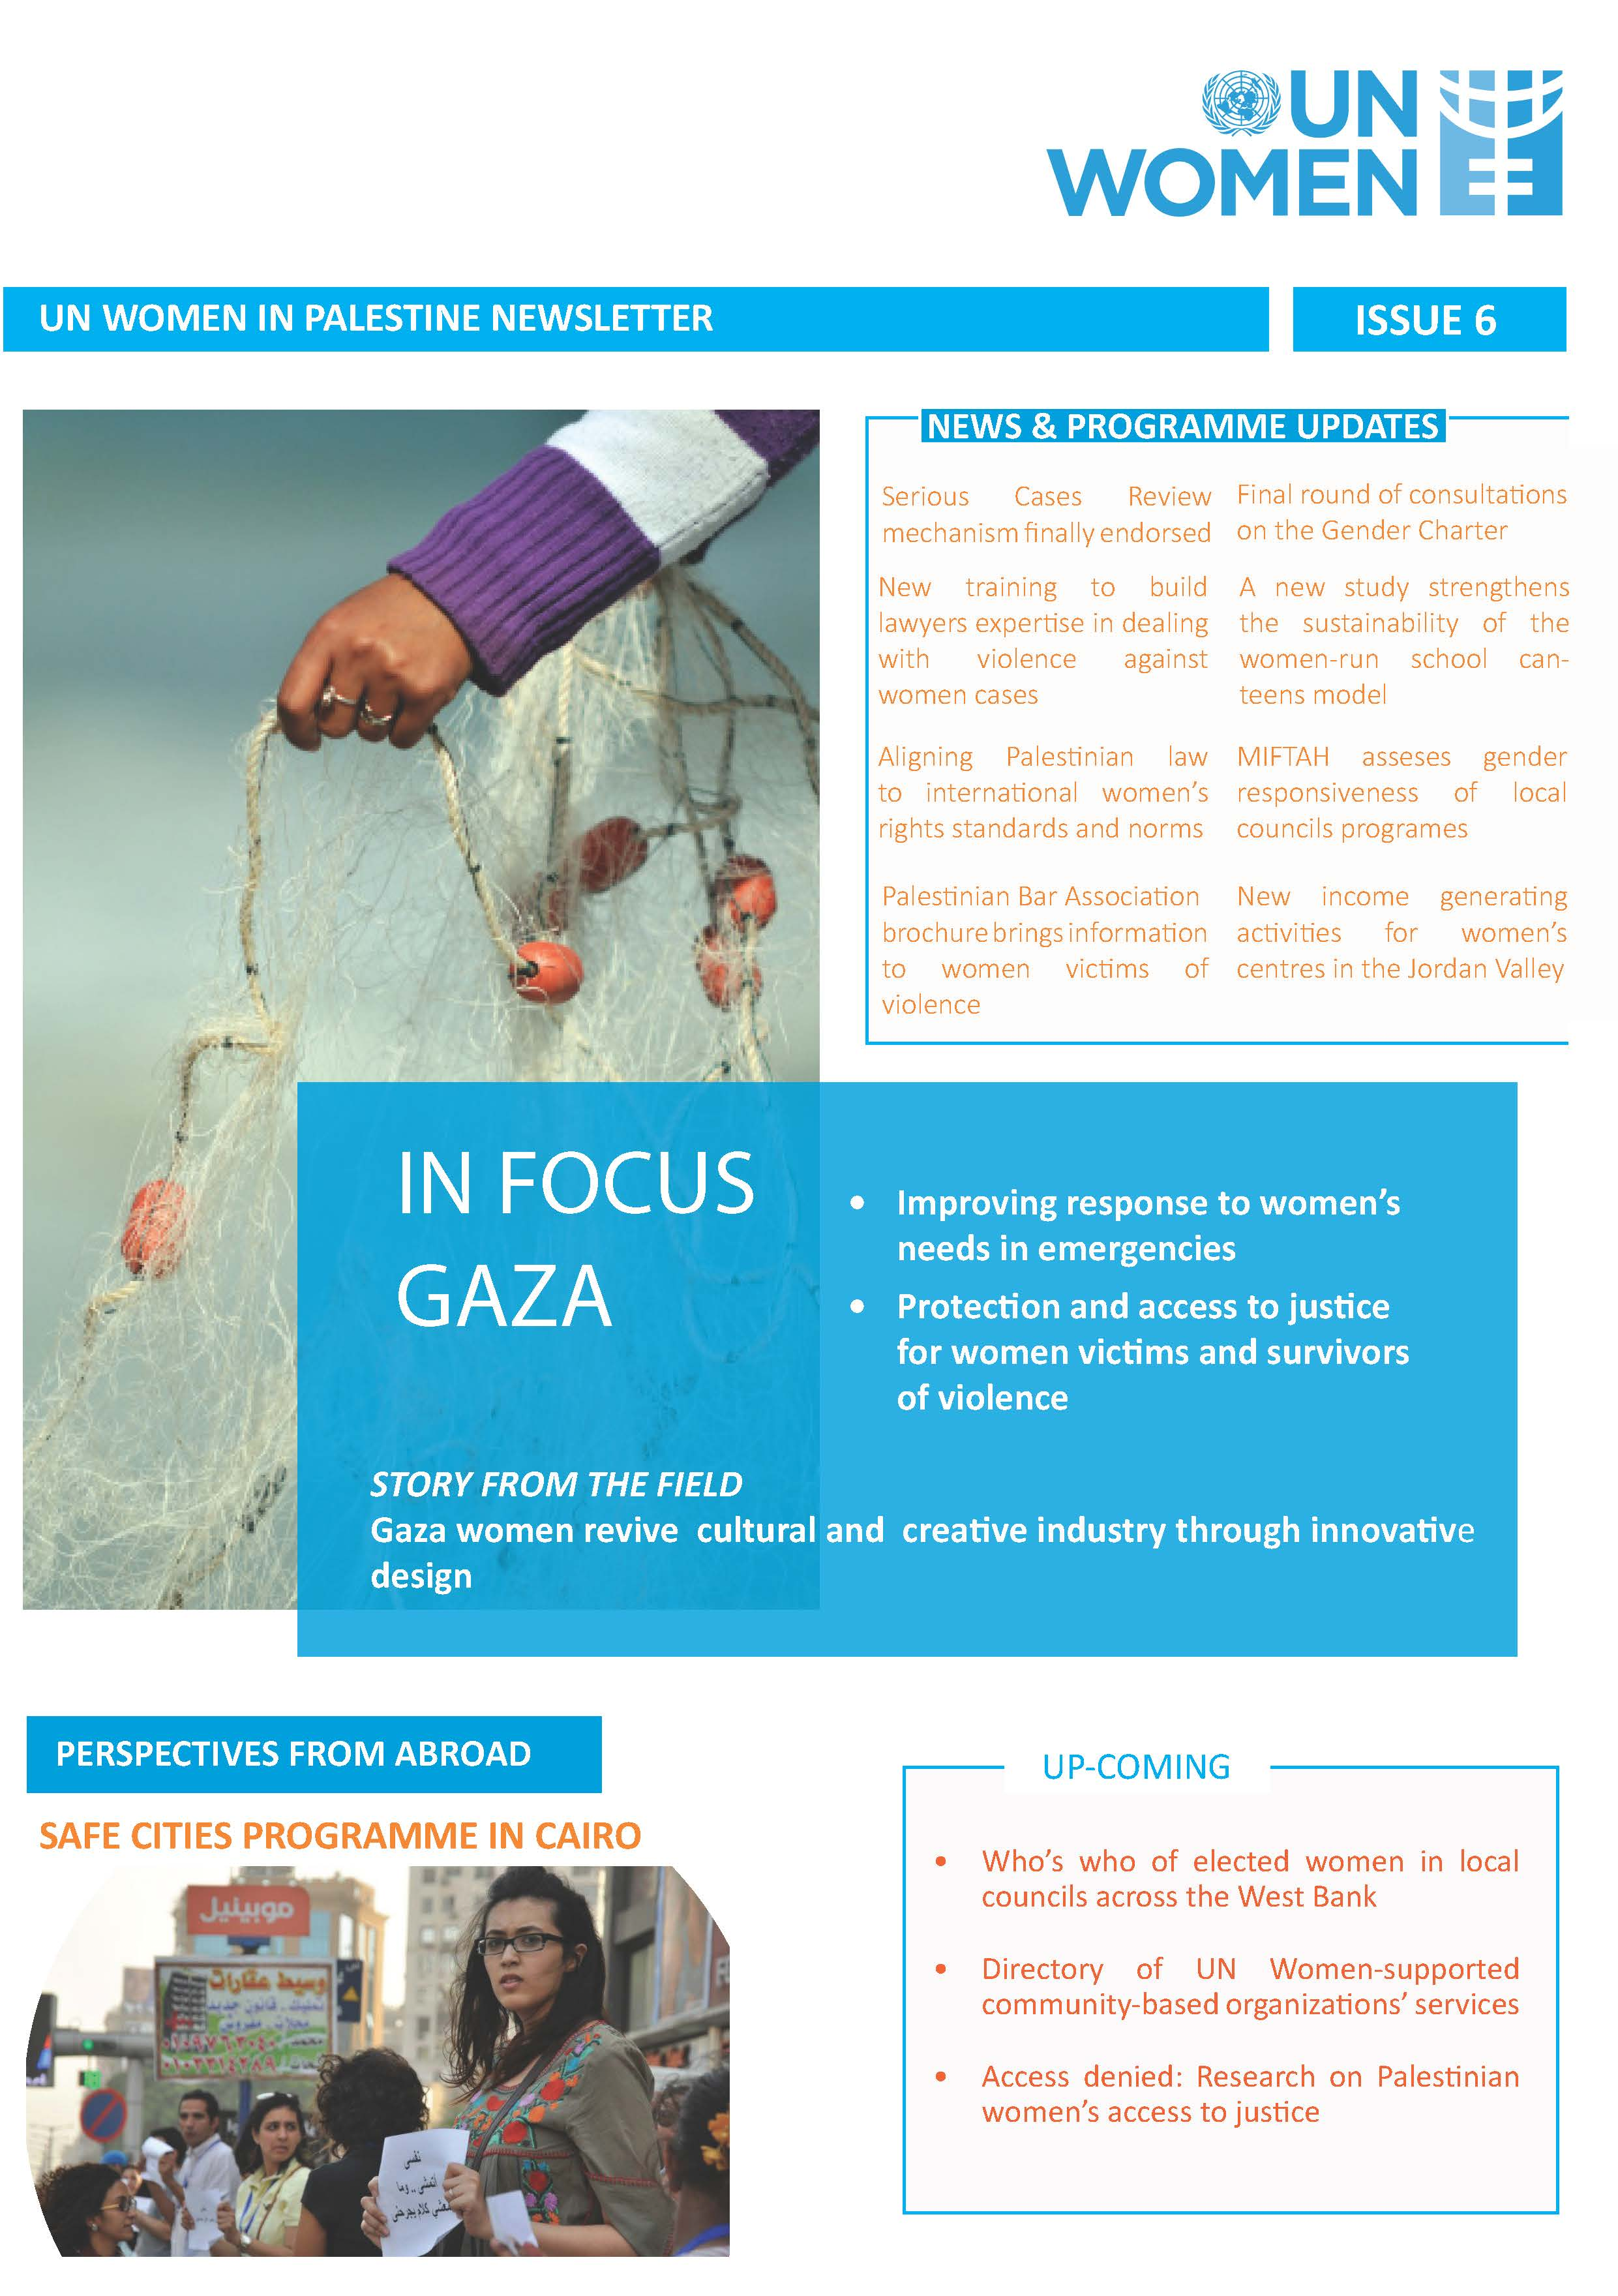 UN Women in Palestine Newsletter 6